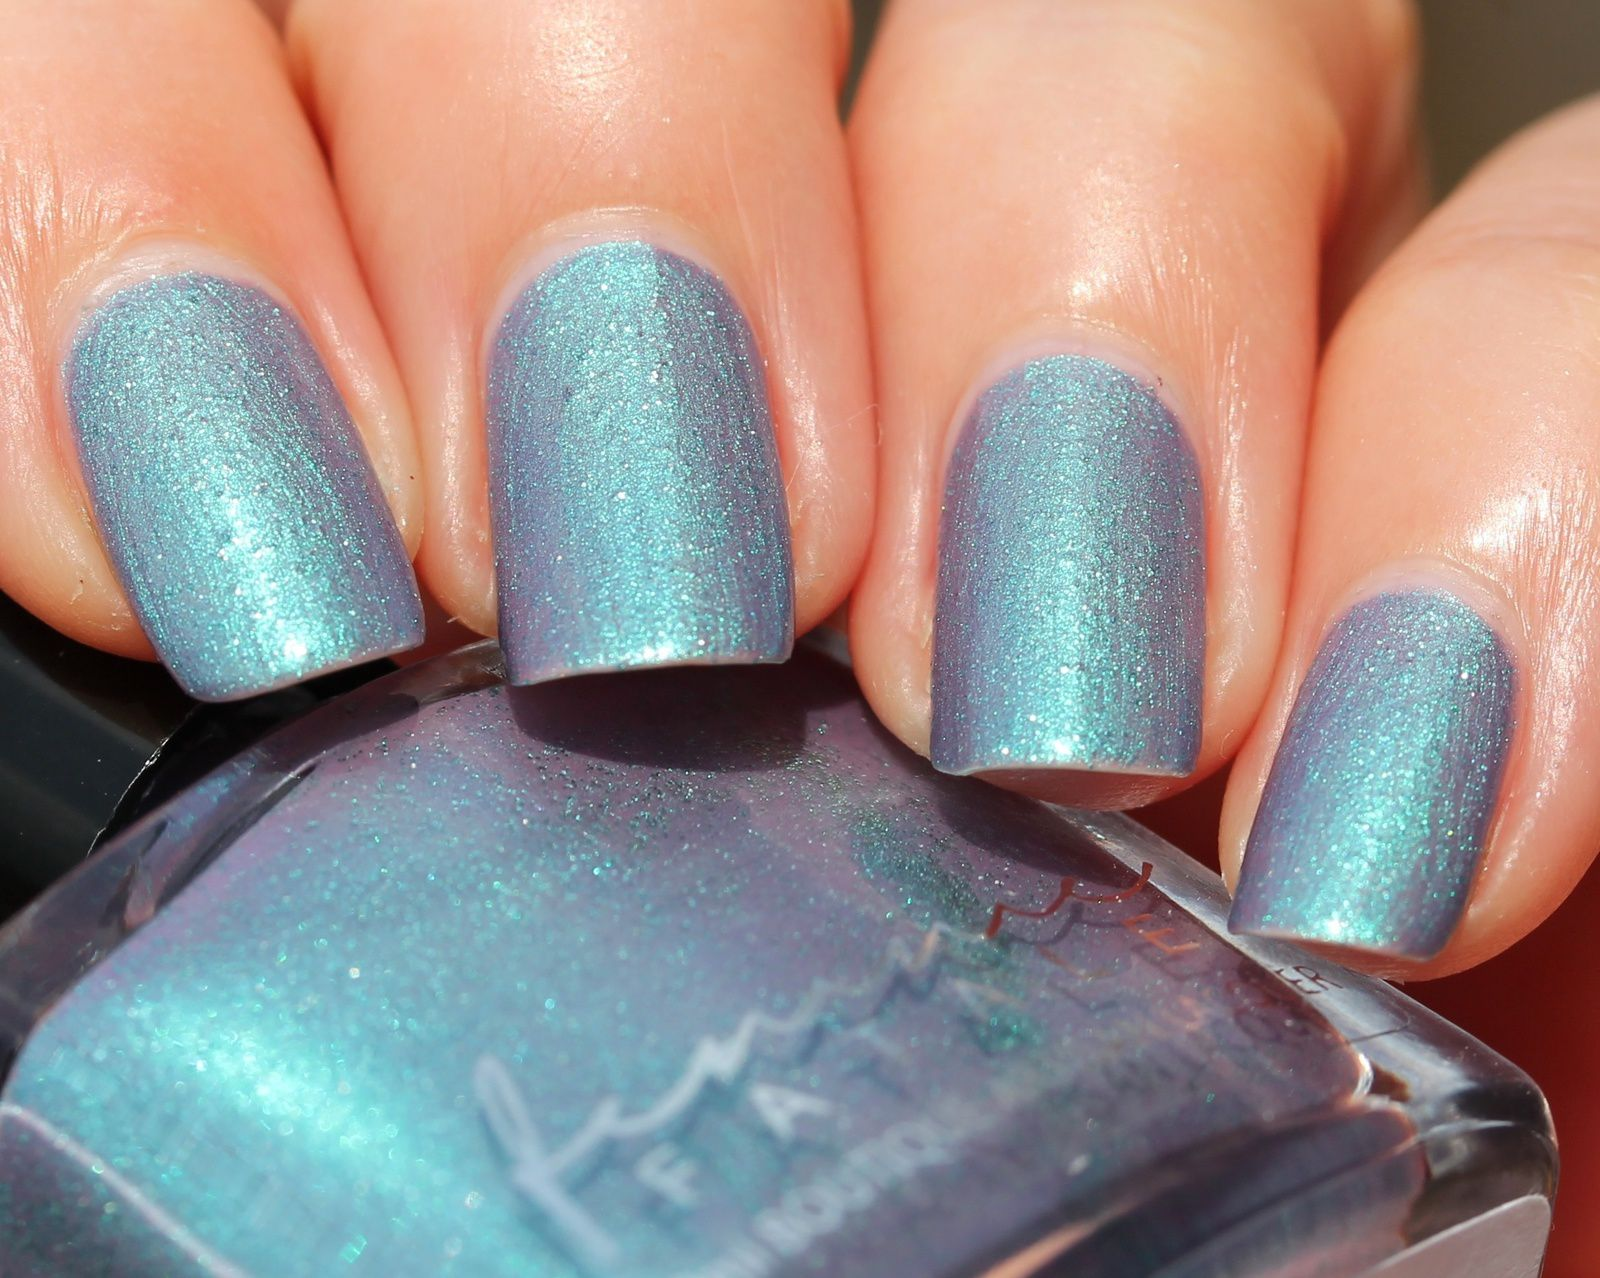 Femme Fatale Cosmetics - Up Above The World You Fly (2 coats, no top coat)